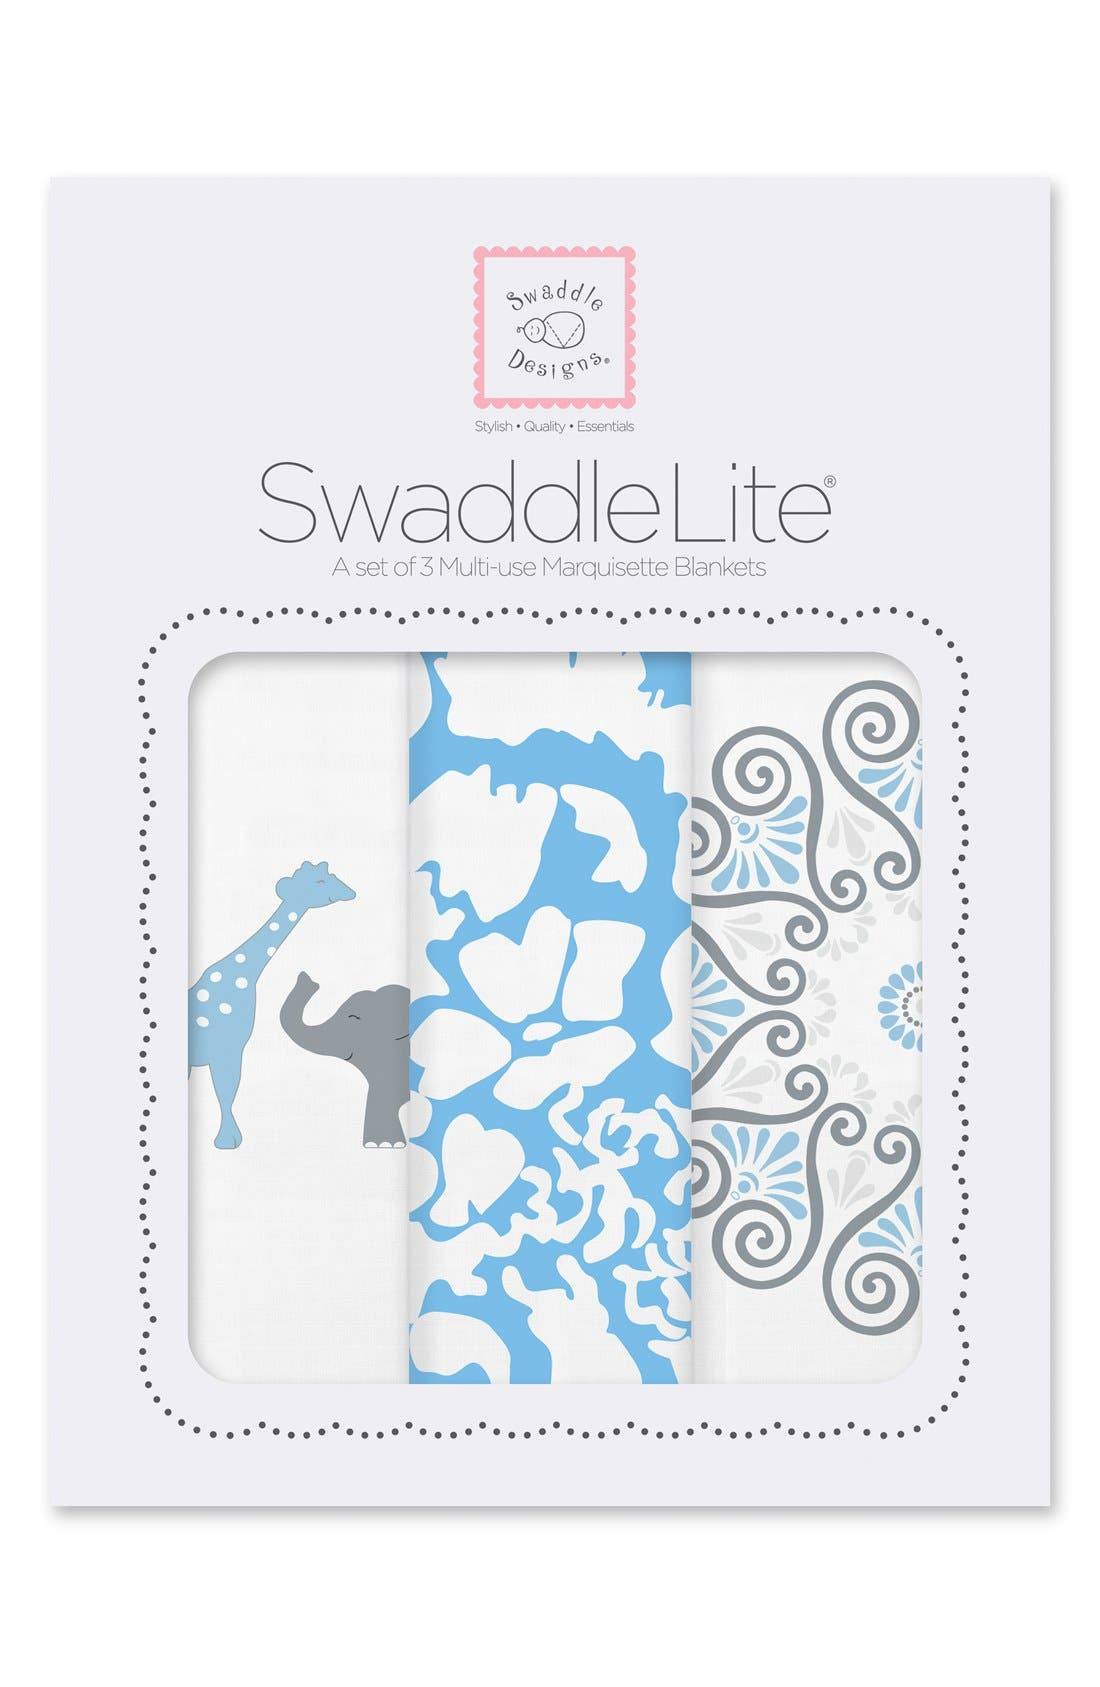 Main Image - Swaddle Designs 'Swaddle Lite - Lush' Marquisette Blanket (Set of 3)